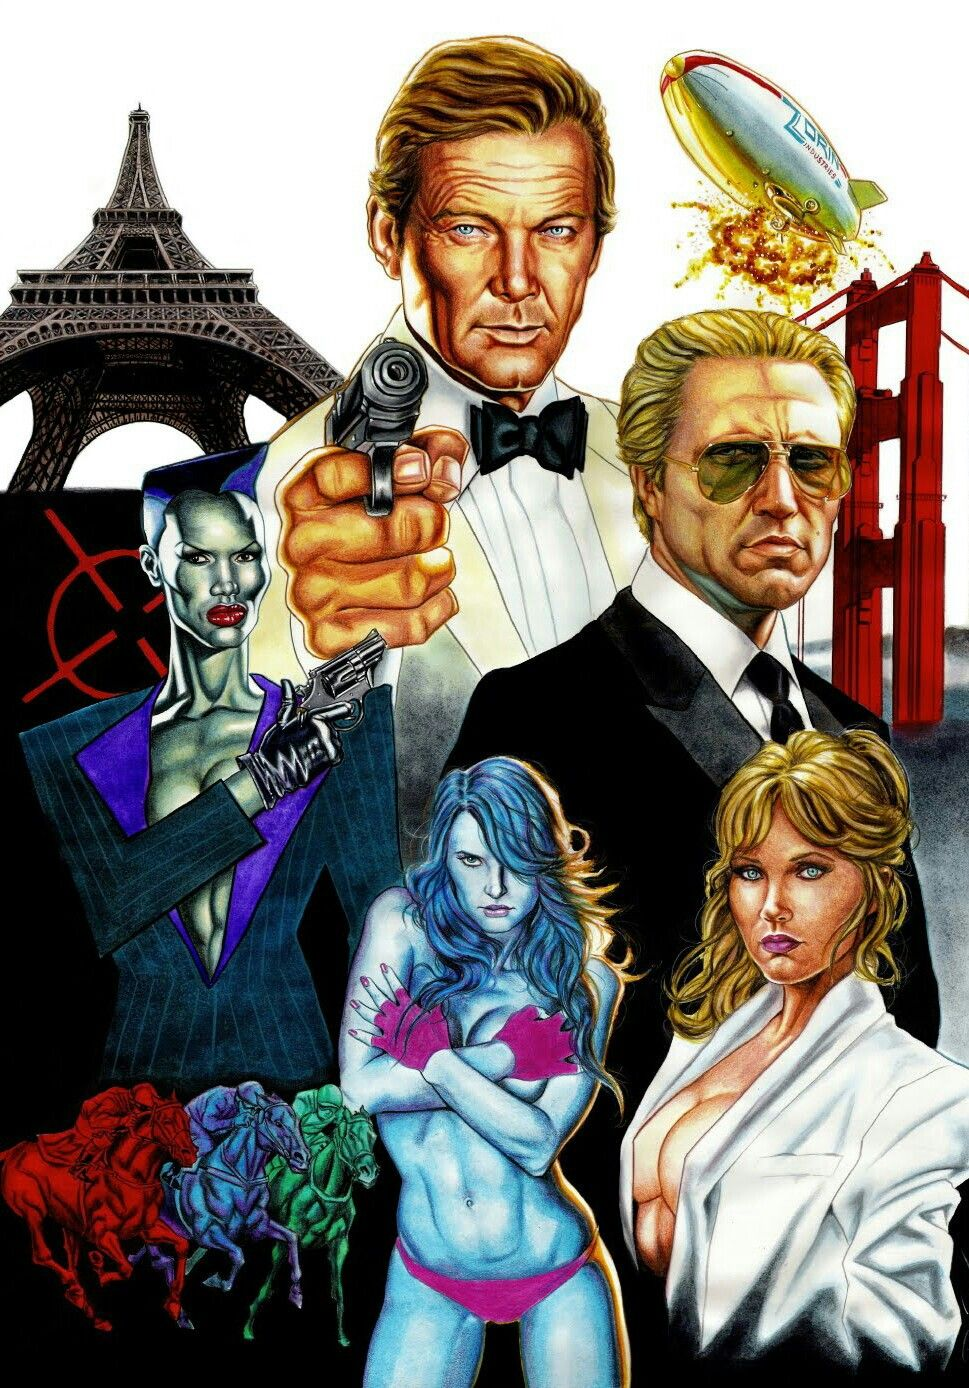 James Bond A View To A Kill With Images James Bond Movie